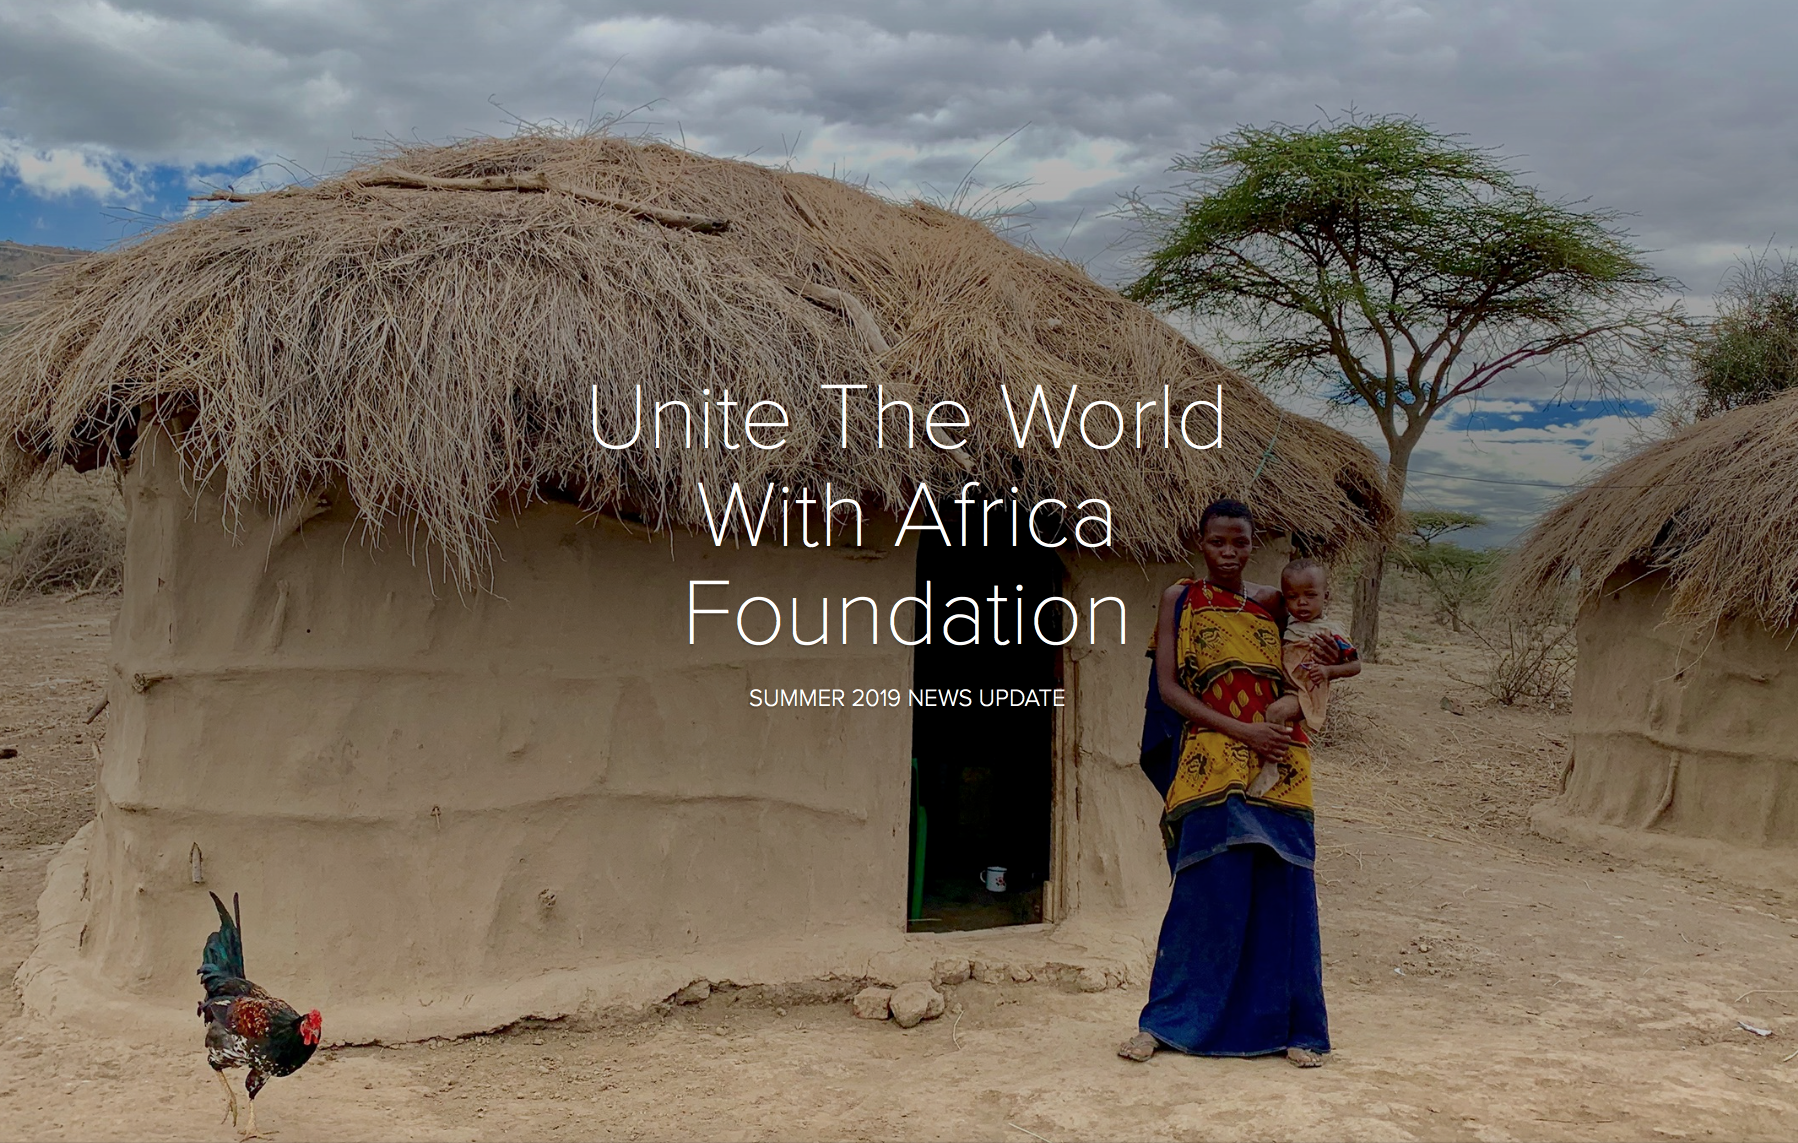 Unite The World With Africa Foundation, Summer 2019 News Update